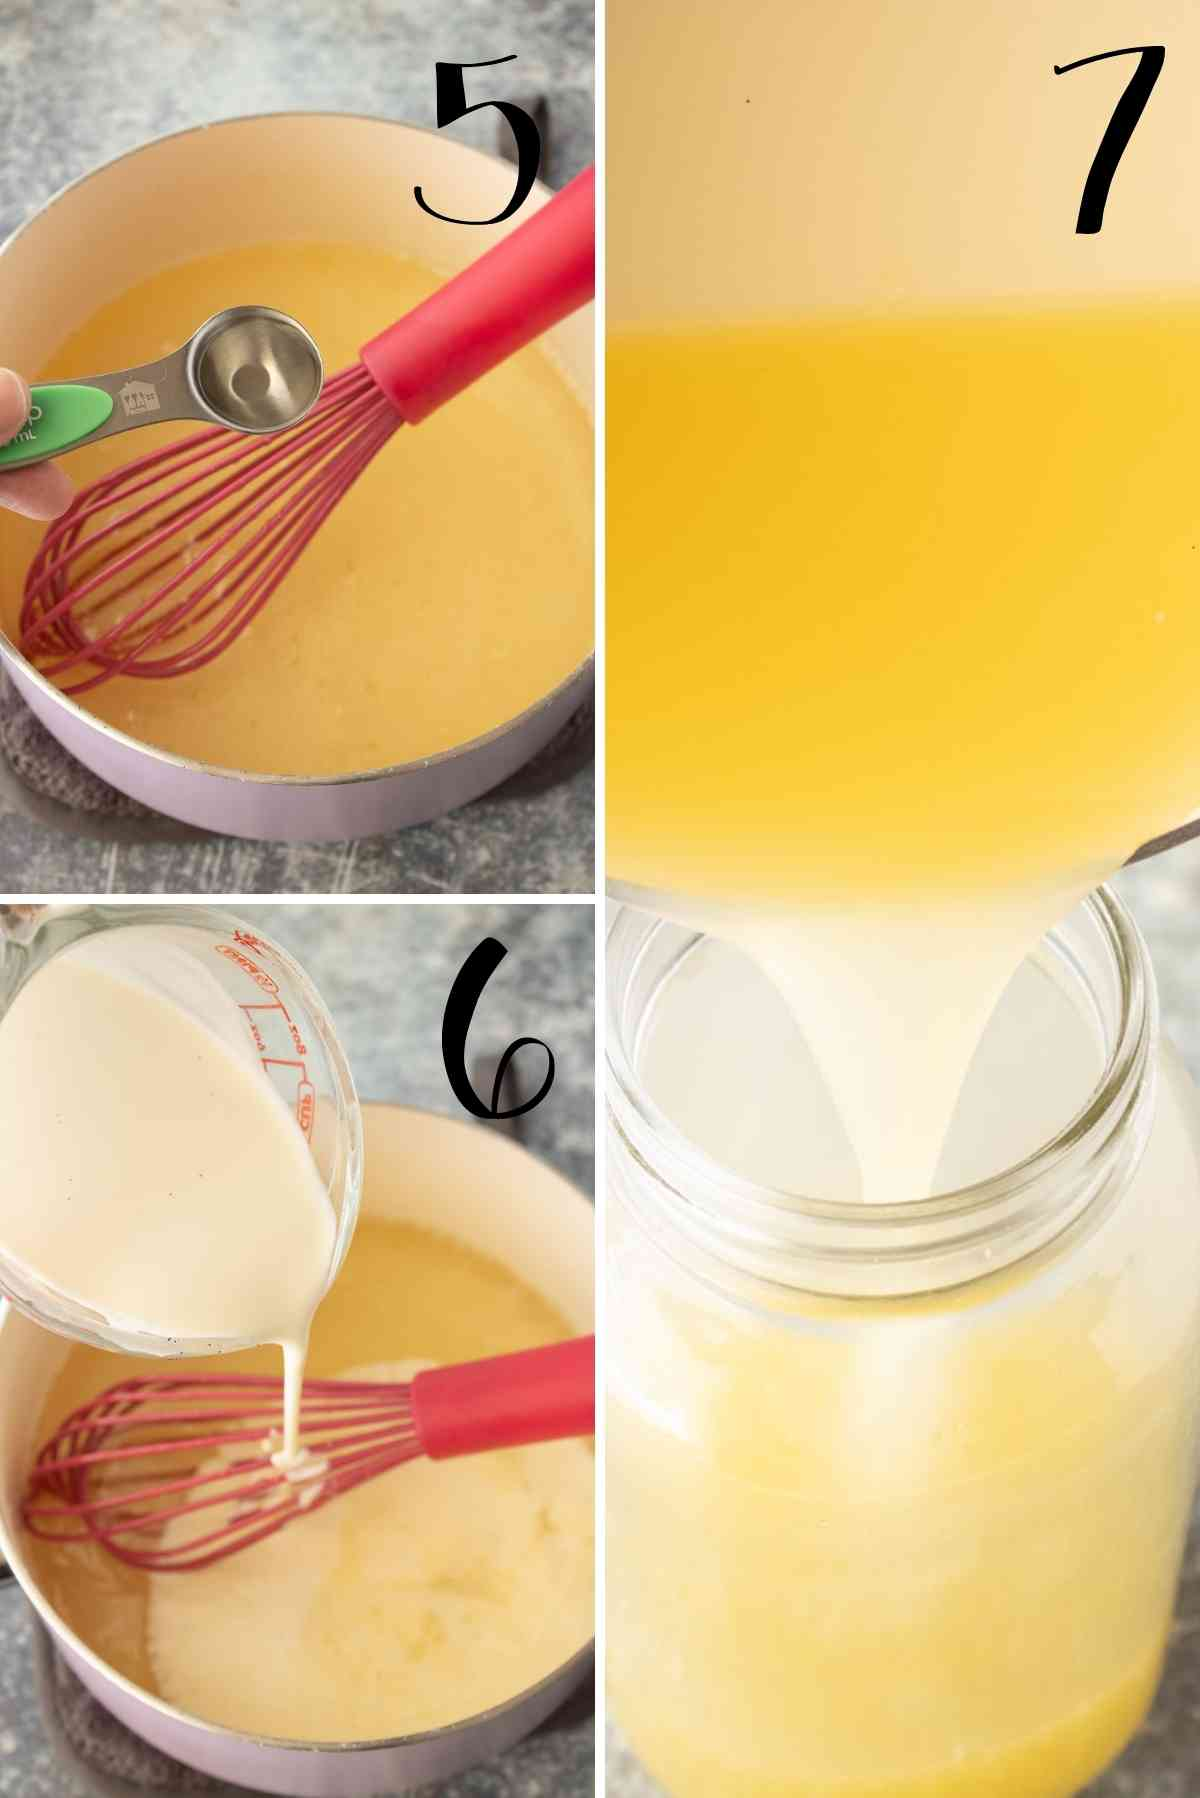 Lemon extract and cream added to finish syrup.  Leftover syrup poured in a jar.